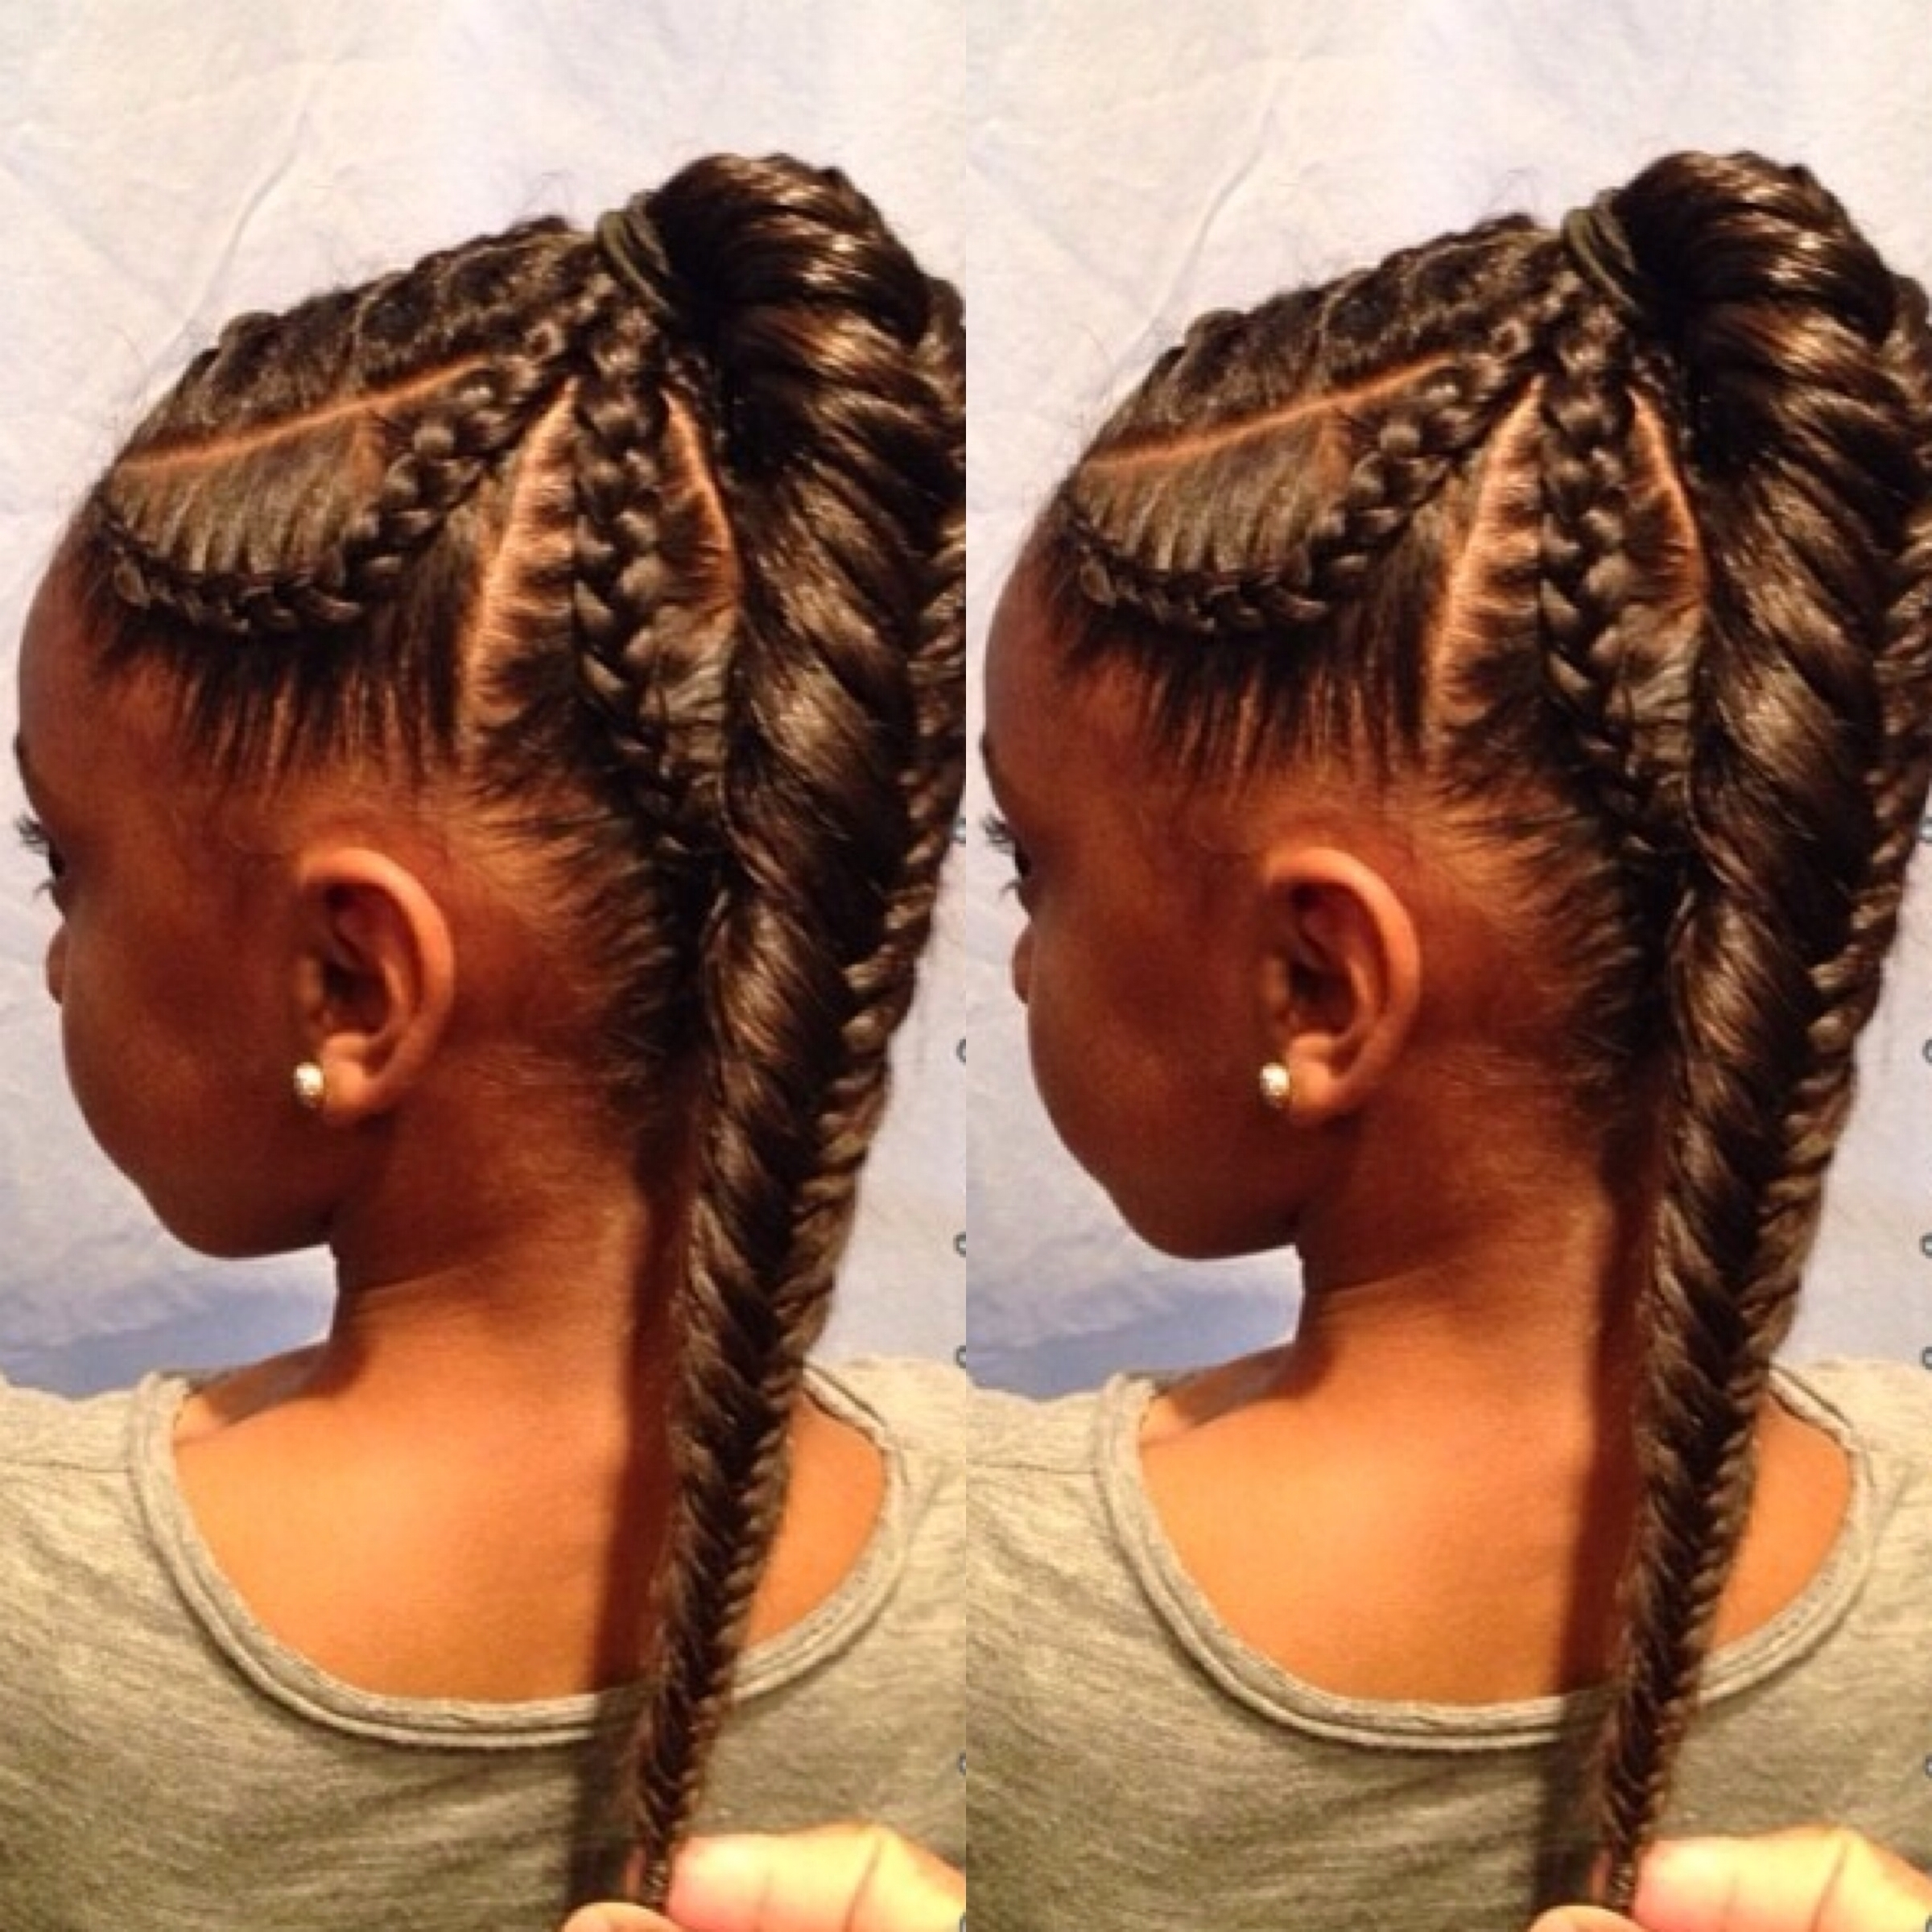 Braided Ponytail Hairstyles For Black Hair – Innoviustech Regarding Current Braided Ponytail Hairstyles (View 5 of 15)